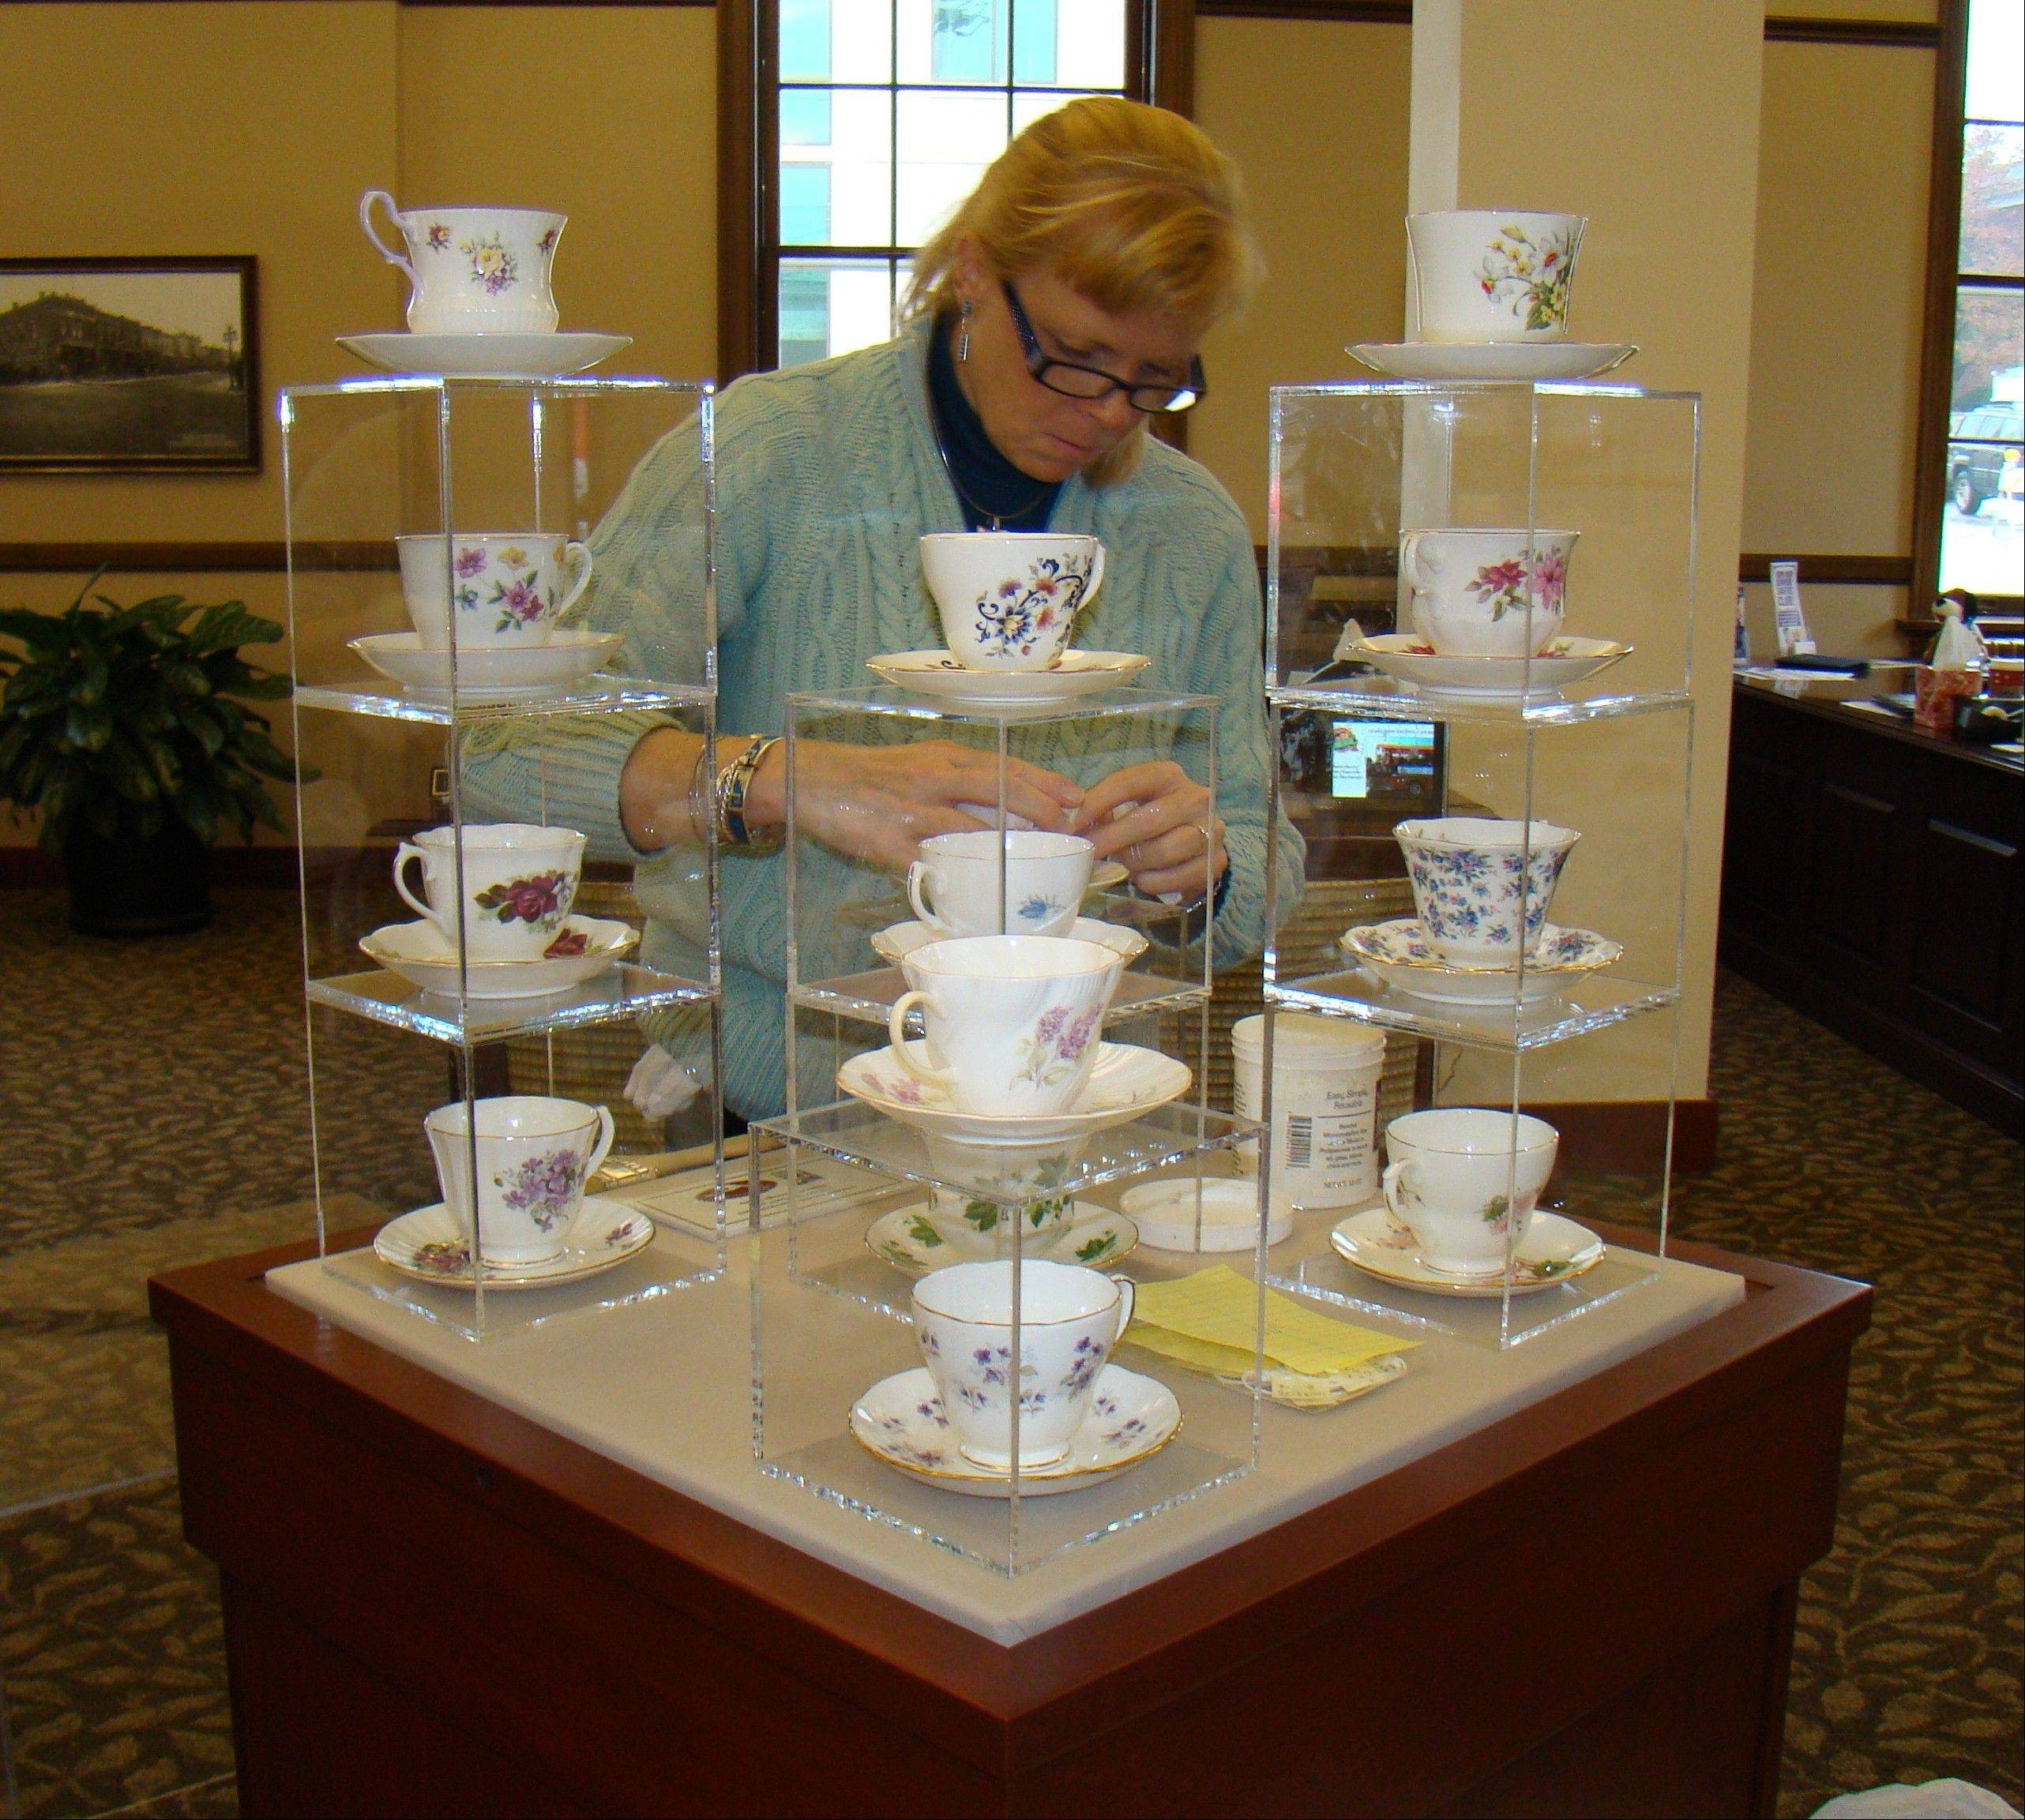 Naper Settlement's chief curator, Louise Howard, puts the finishing touches on one of the Cup of Cheer displays.